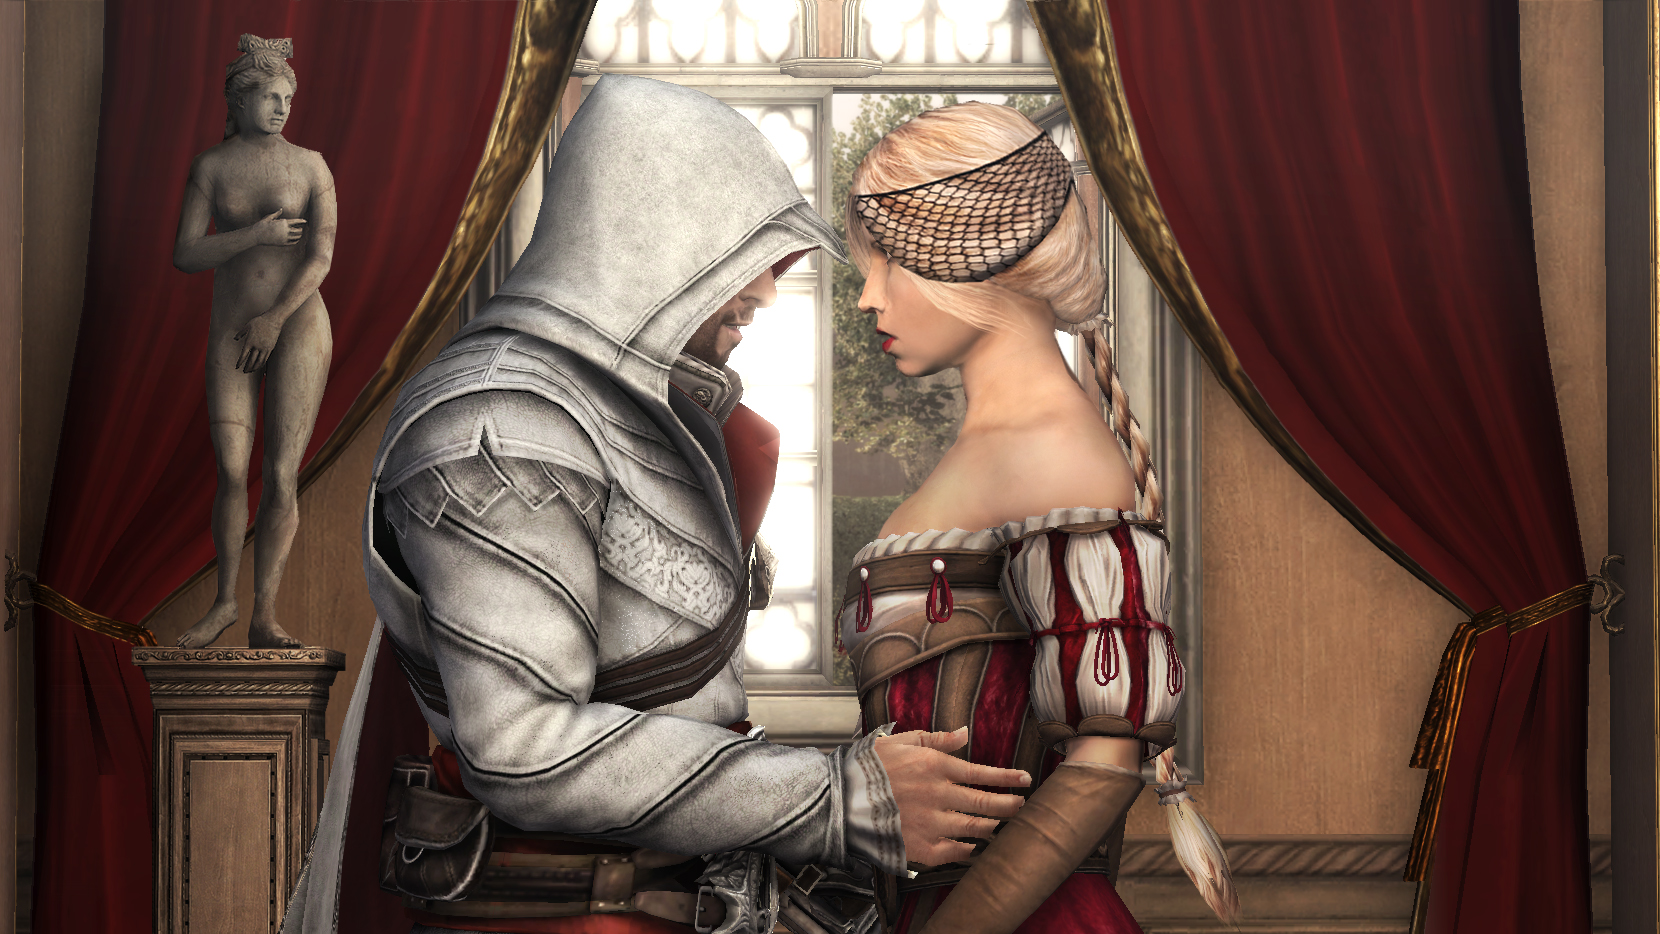 Assassin creed woman porn imagefap sexy picture